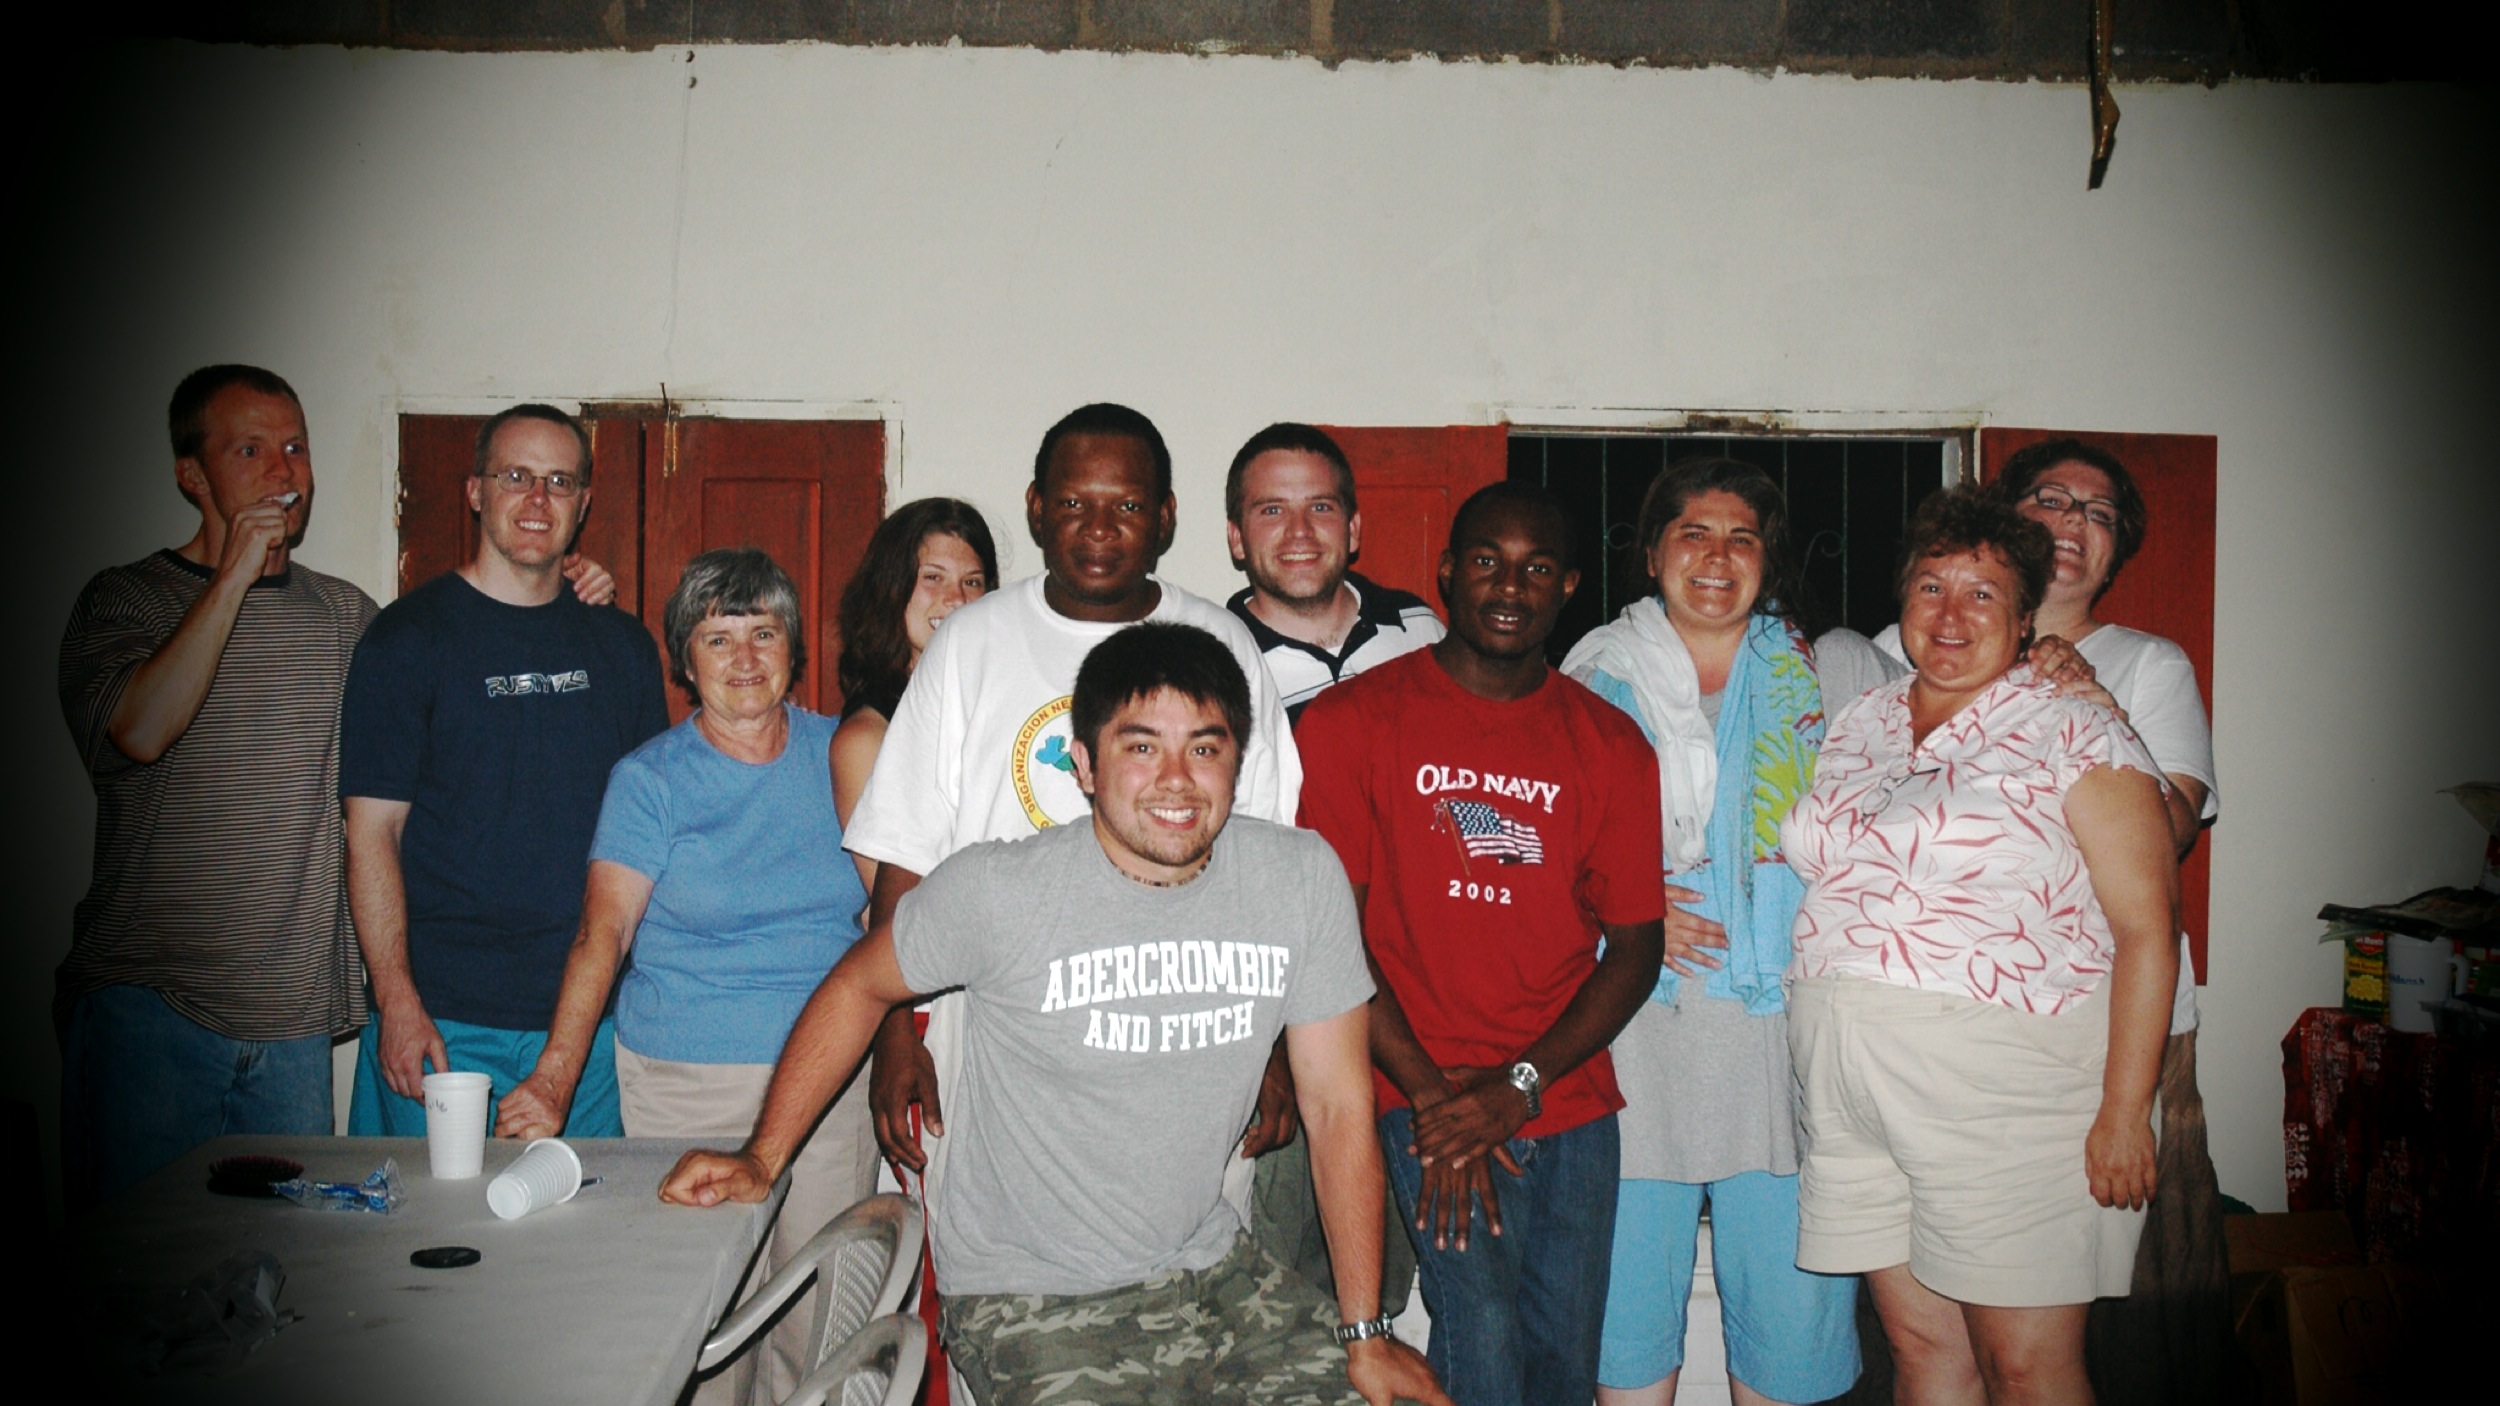 Mission Trip with Morning Star Church in Tampa. Circa 2006